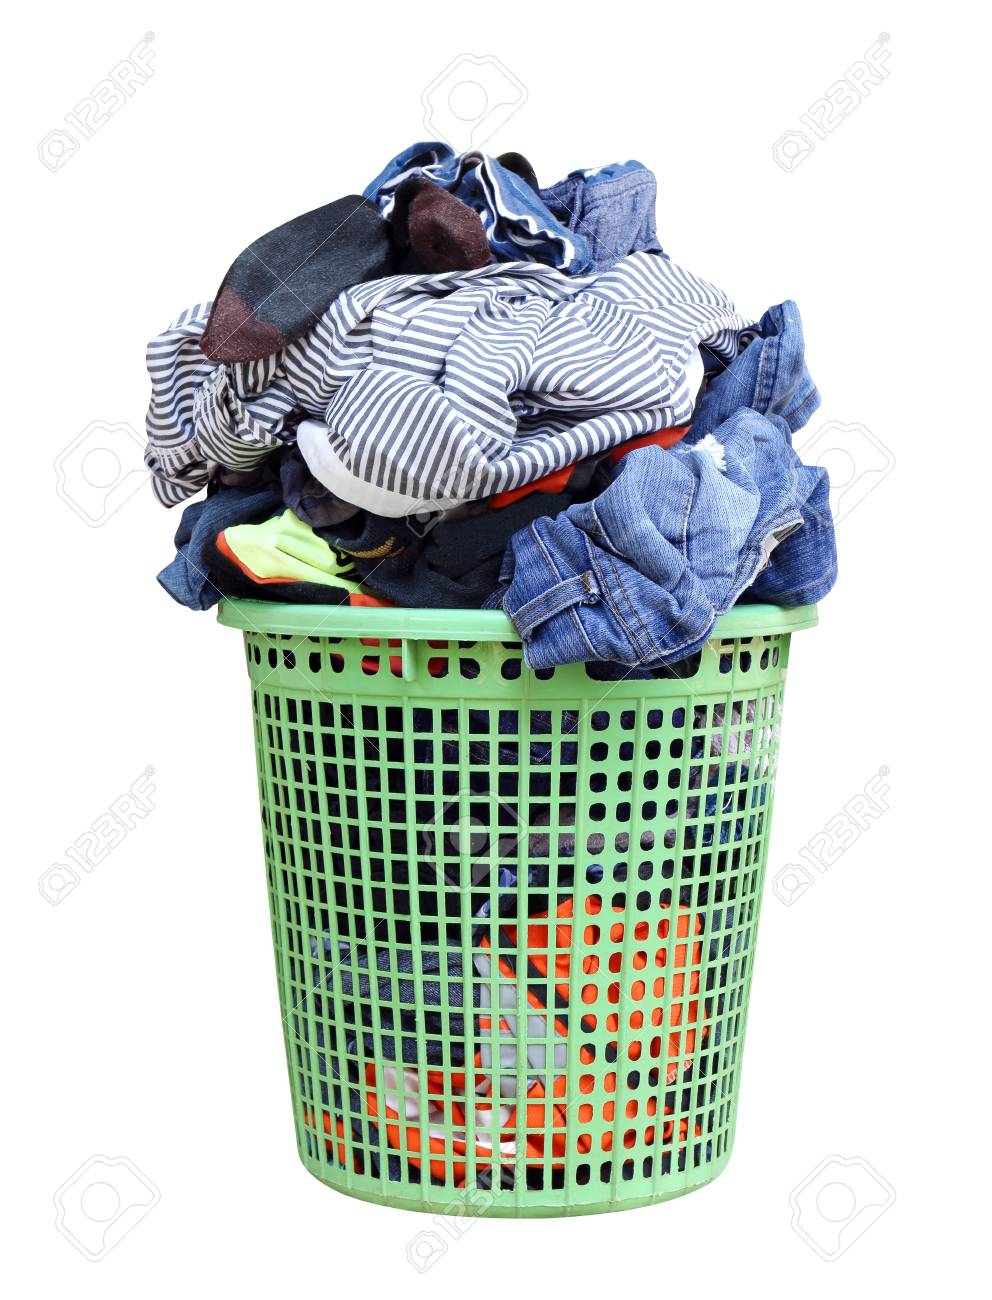 Dirty Laundry Baskets Pile Of Dirty Laundry In A Washing Basket Laundry Basket With